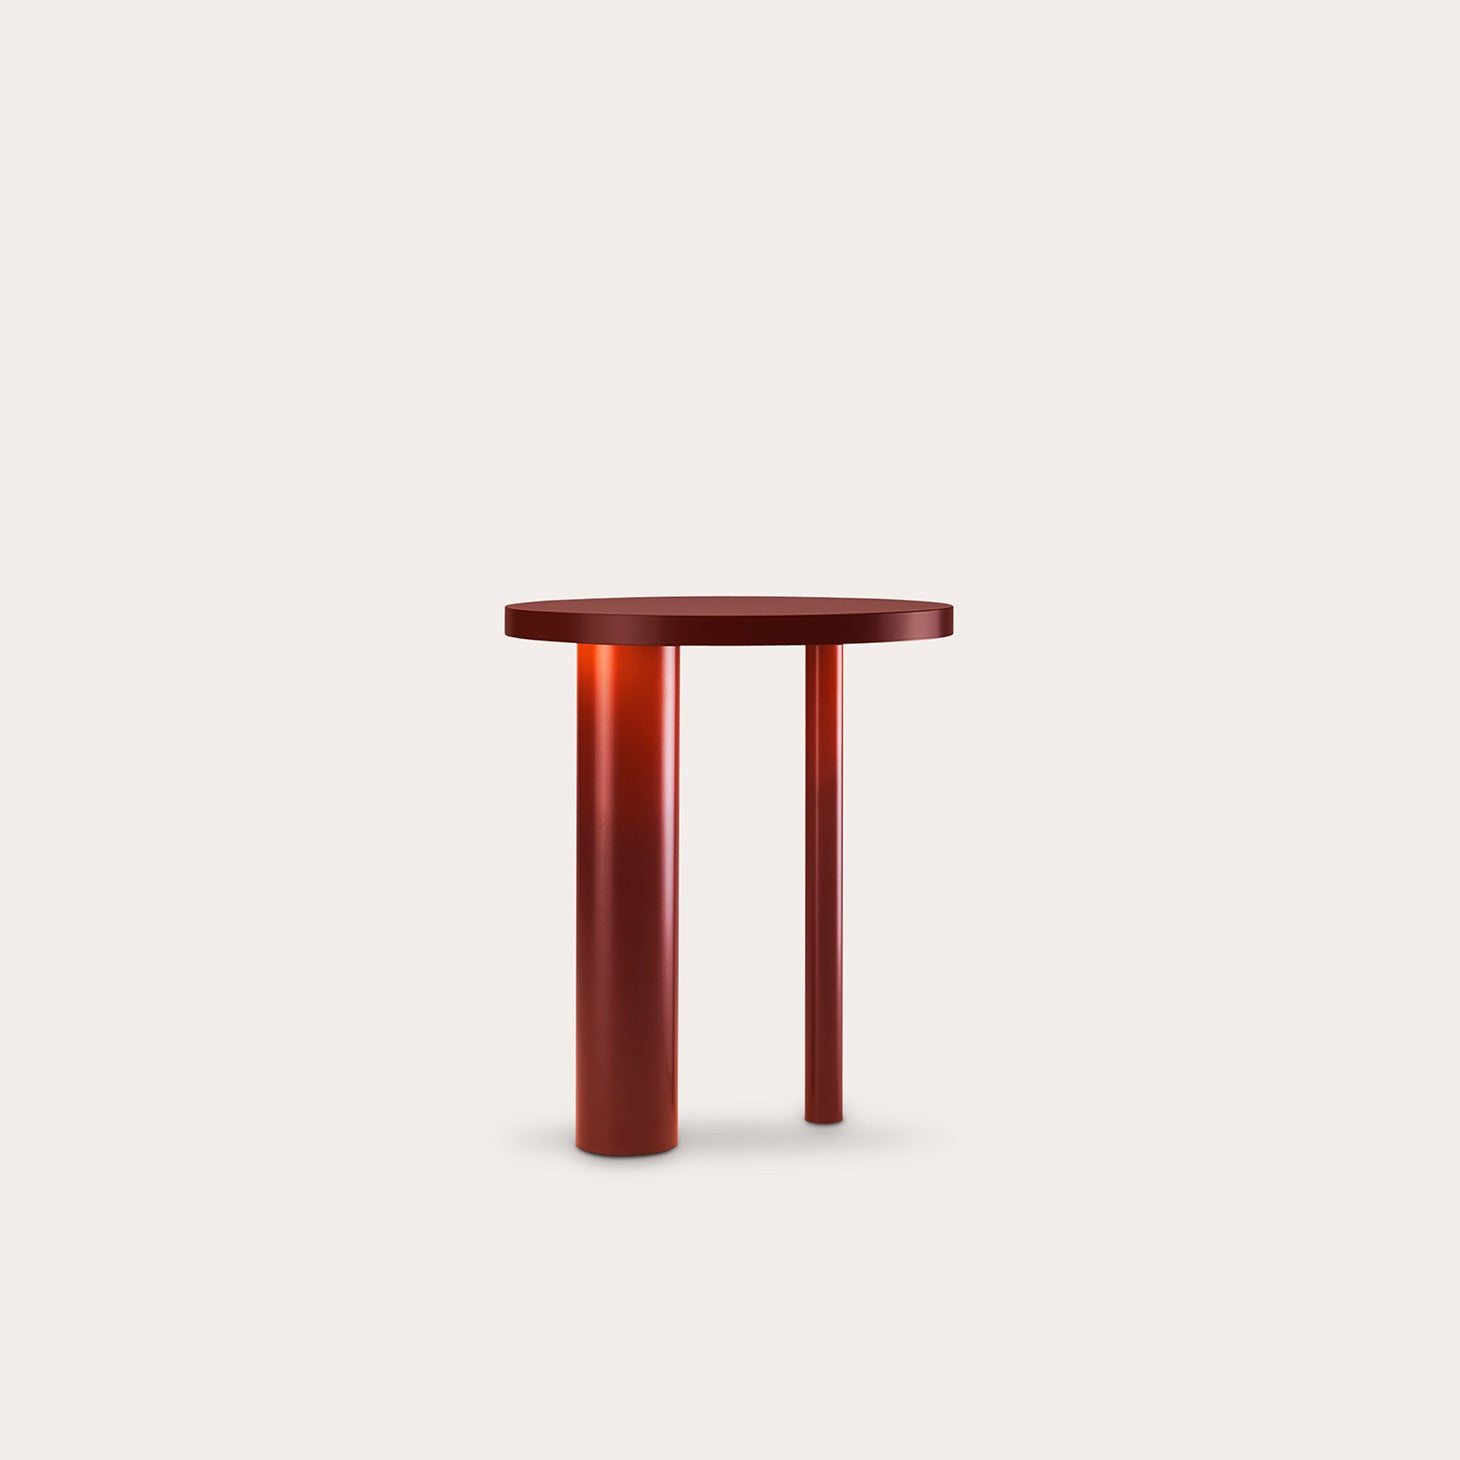 Table Composition Lighting Michael Anastassiades Designer Furniture Sku: 717-100-10073